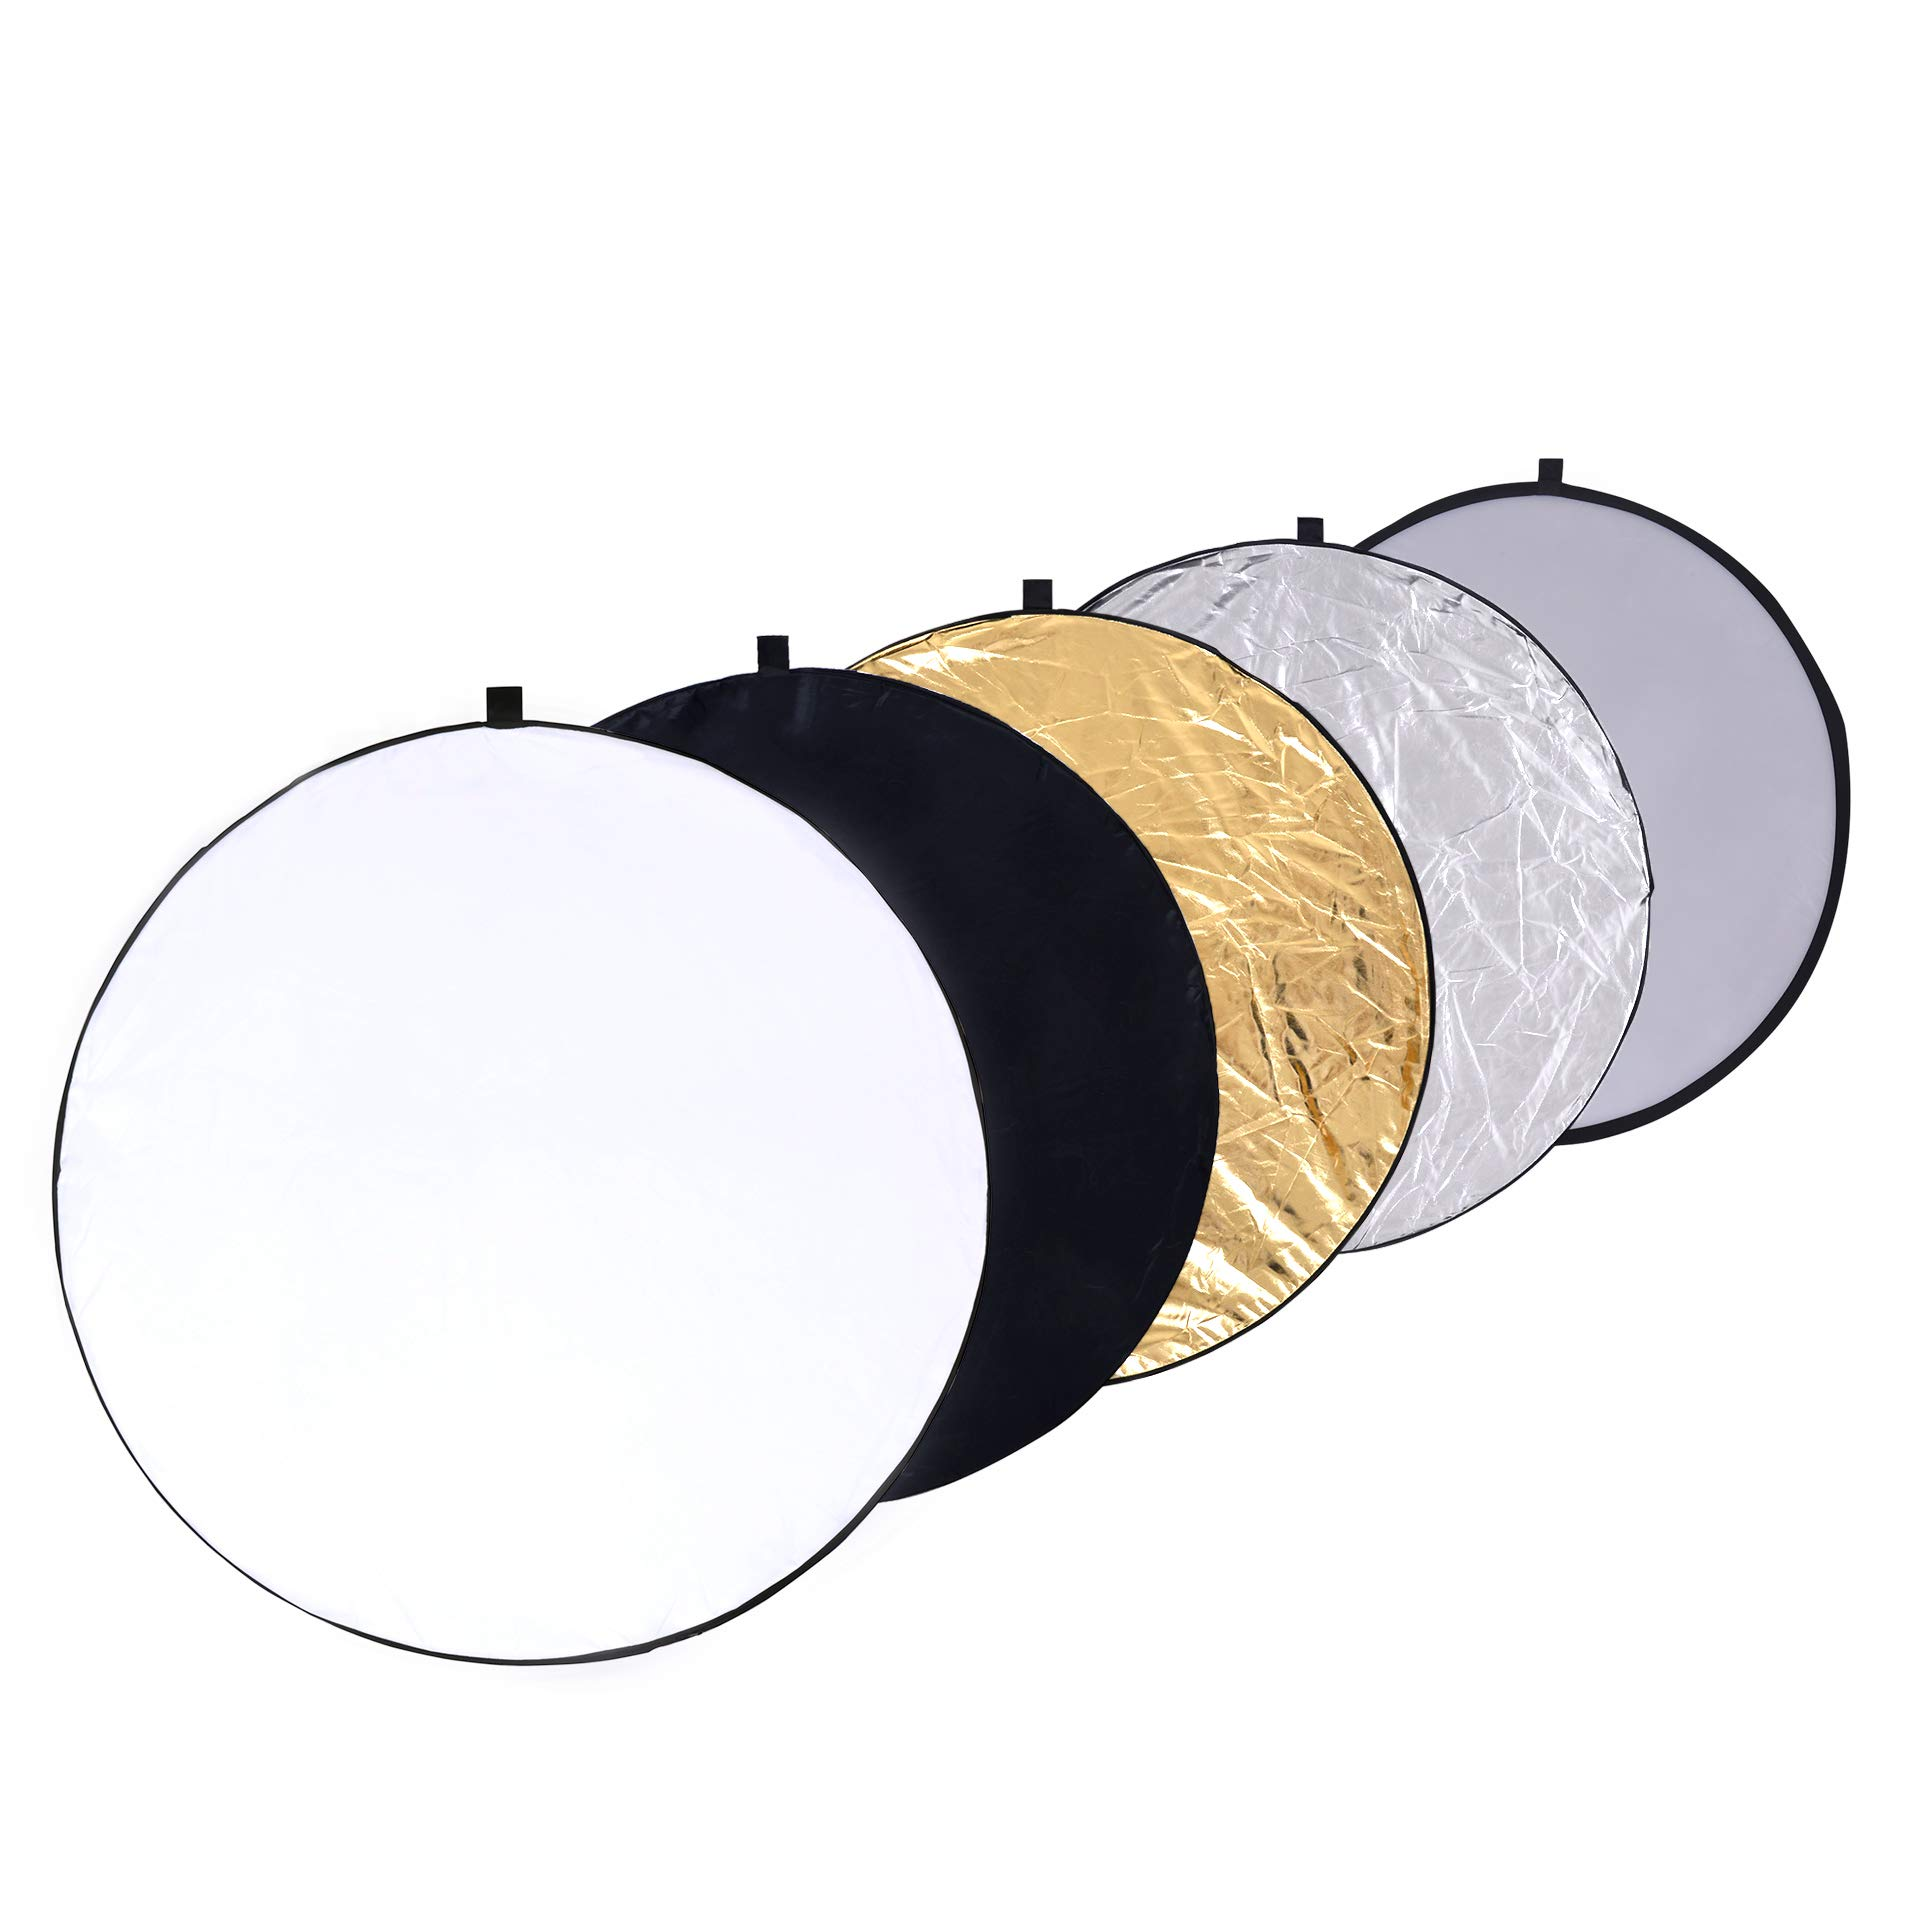 Round 43-inch / 110cm 5-in-1 Portable Collapsible Multi Disc Light Reflector Photography with Bag for Studio or Any Photography Situation-Silver, Gold, White, Translucent and Black